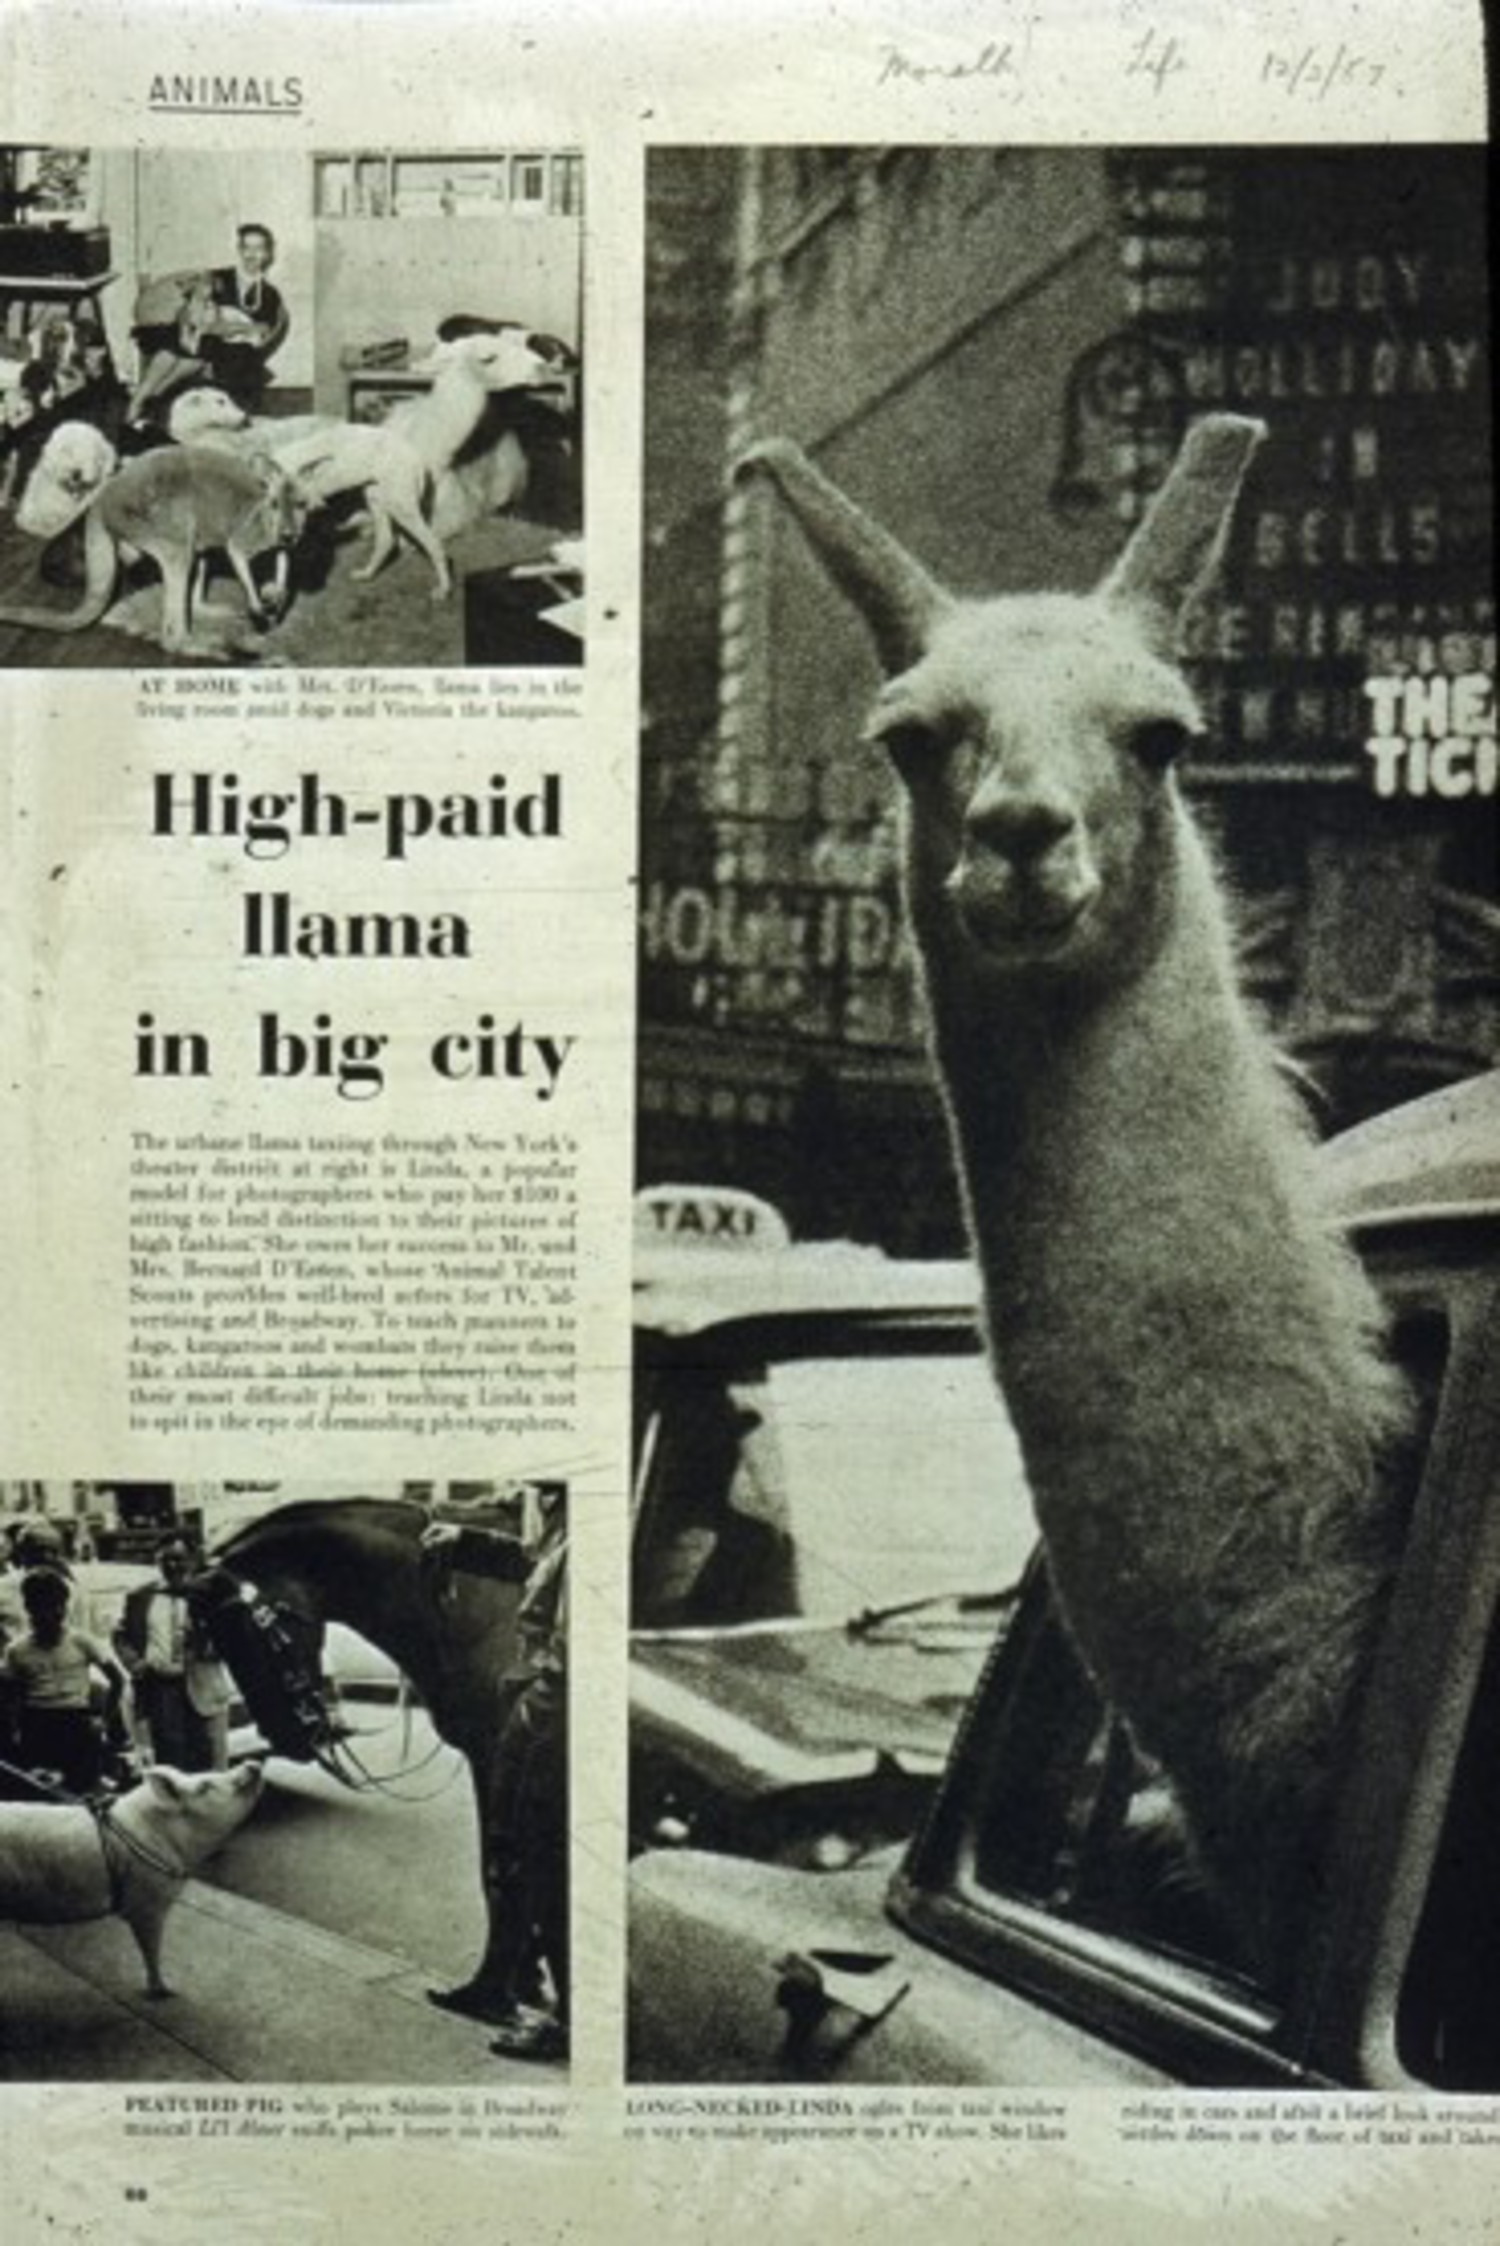 High Paid Llama in Big City, LIFE Magazine, 1957.